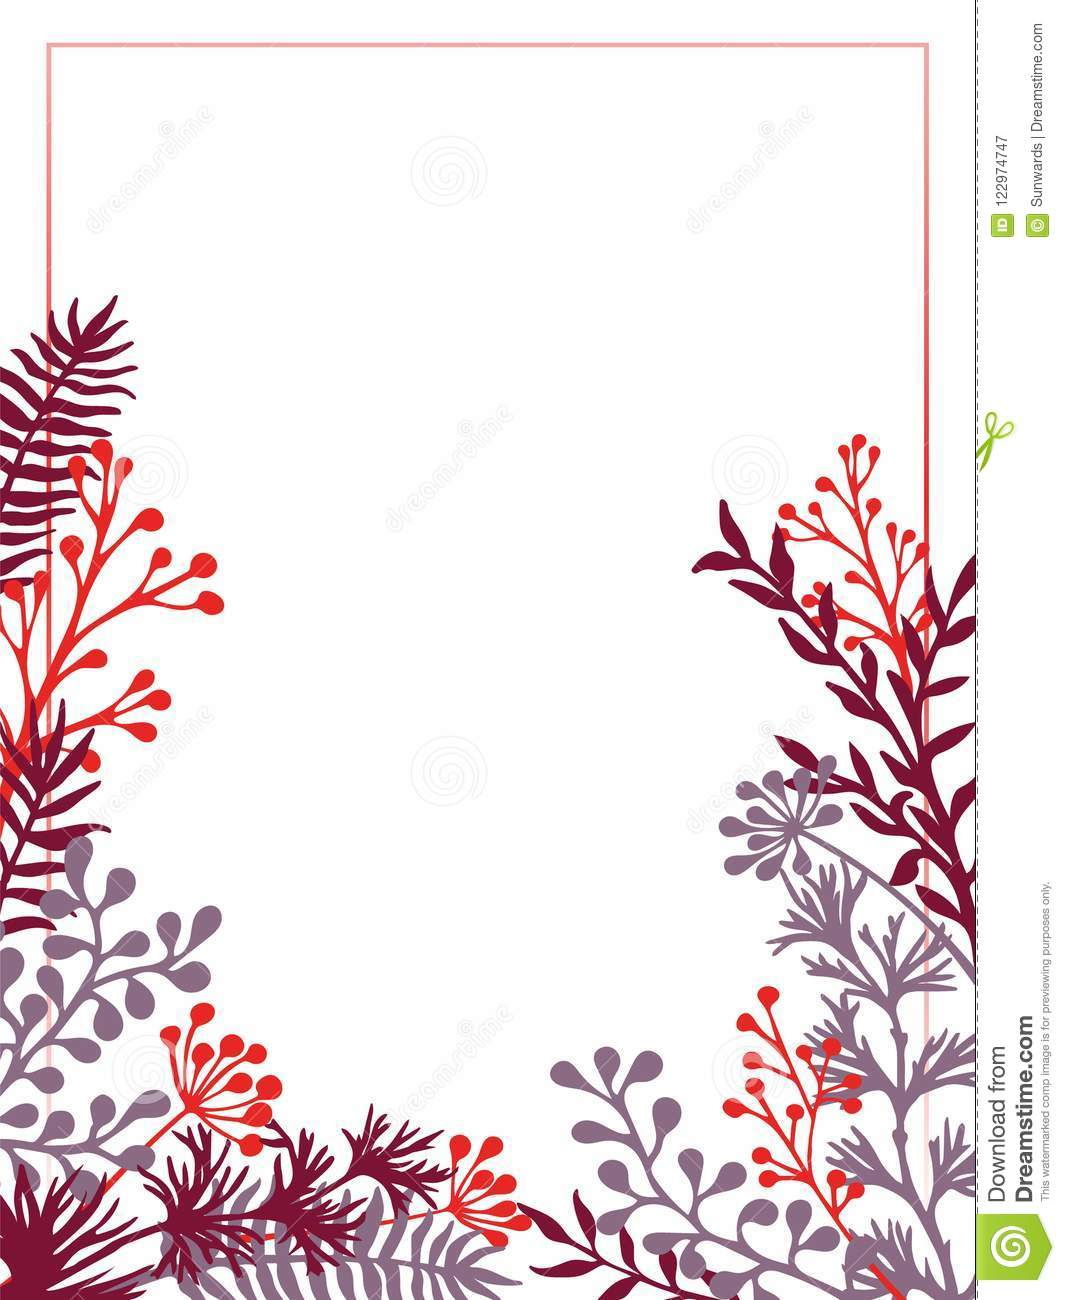 Herbal Twigs And Branches Border Vector Invitation Card Stock